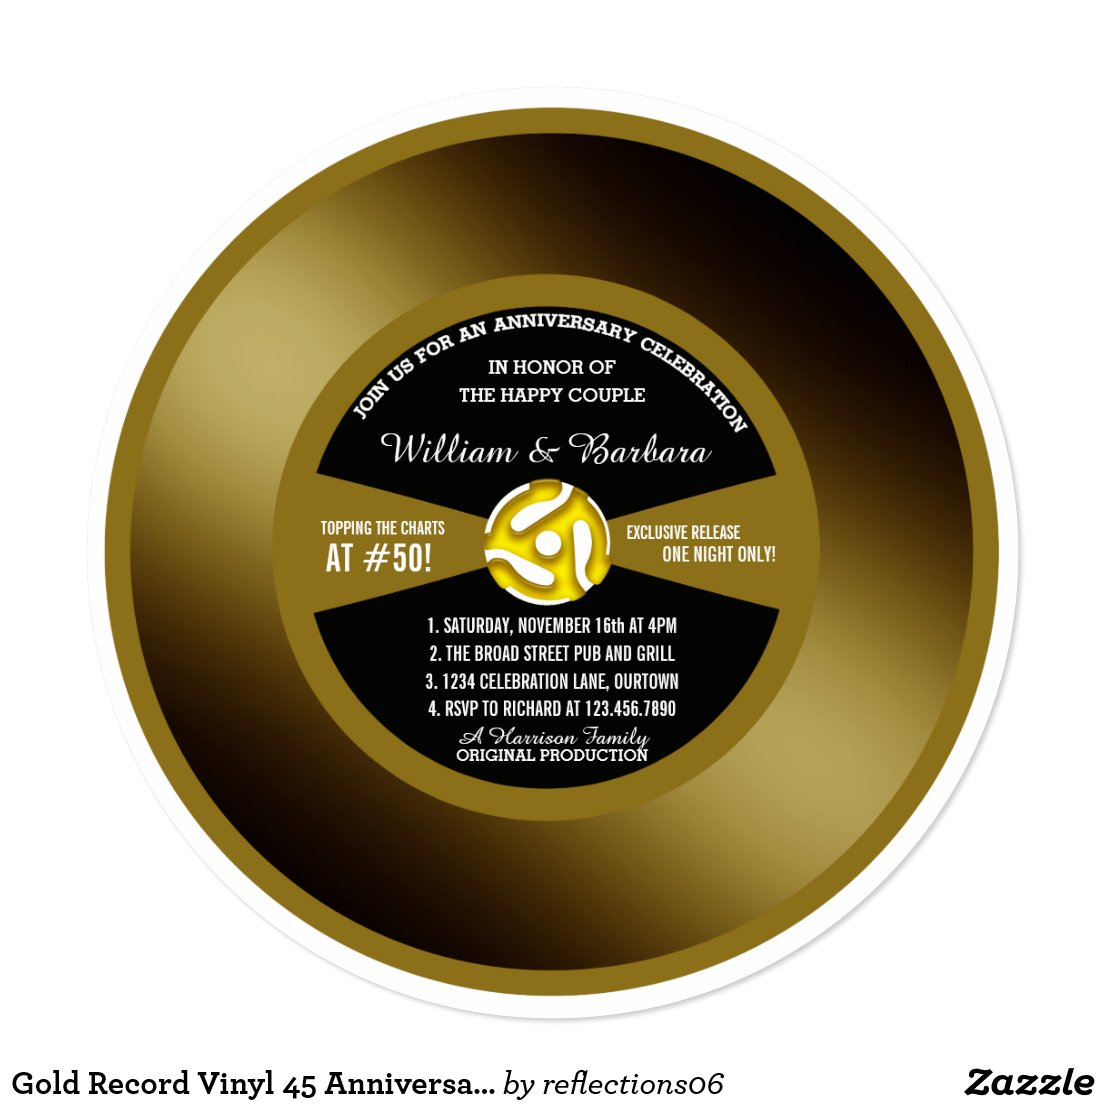 Gold Record Vinyl 45 Anniversary Party Invitation